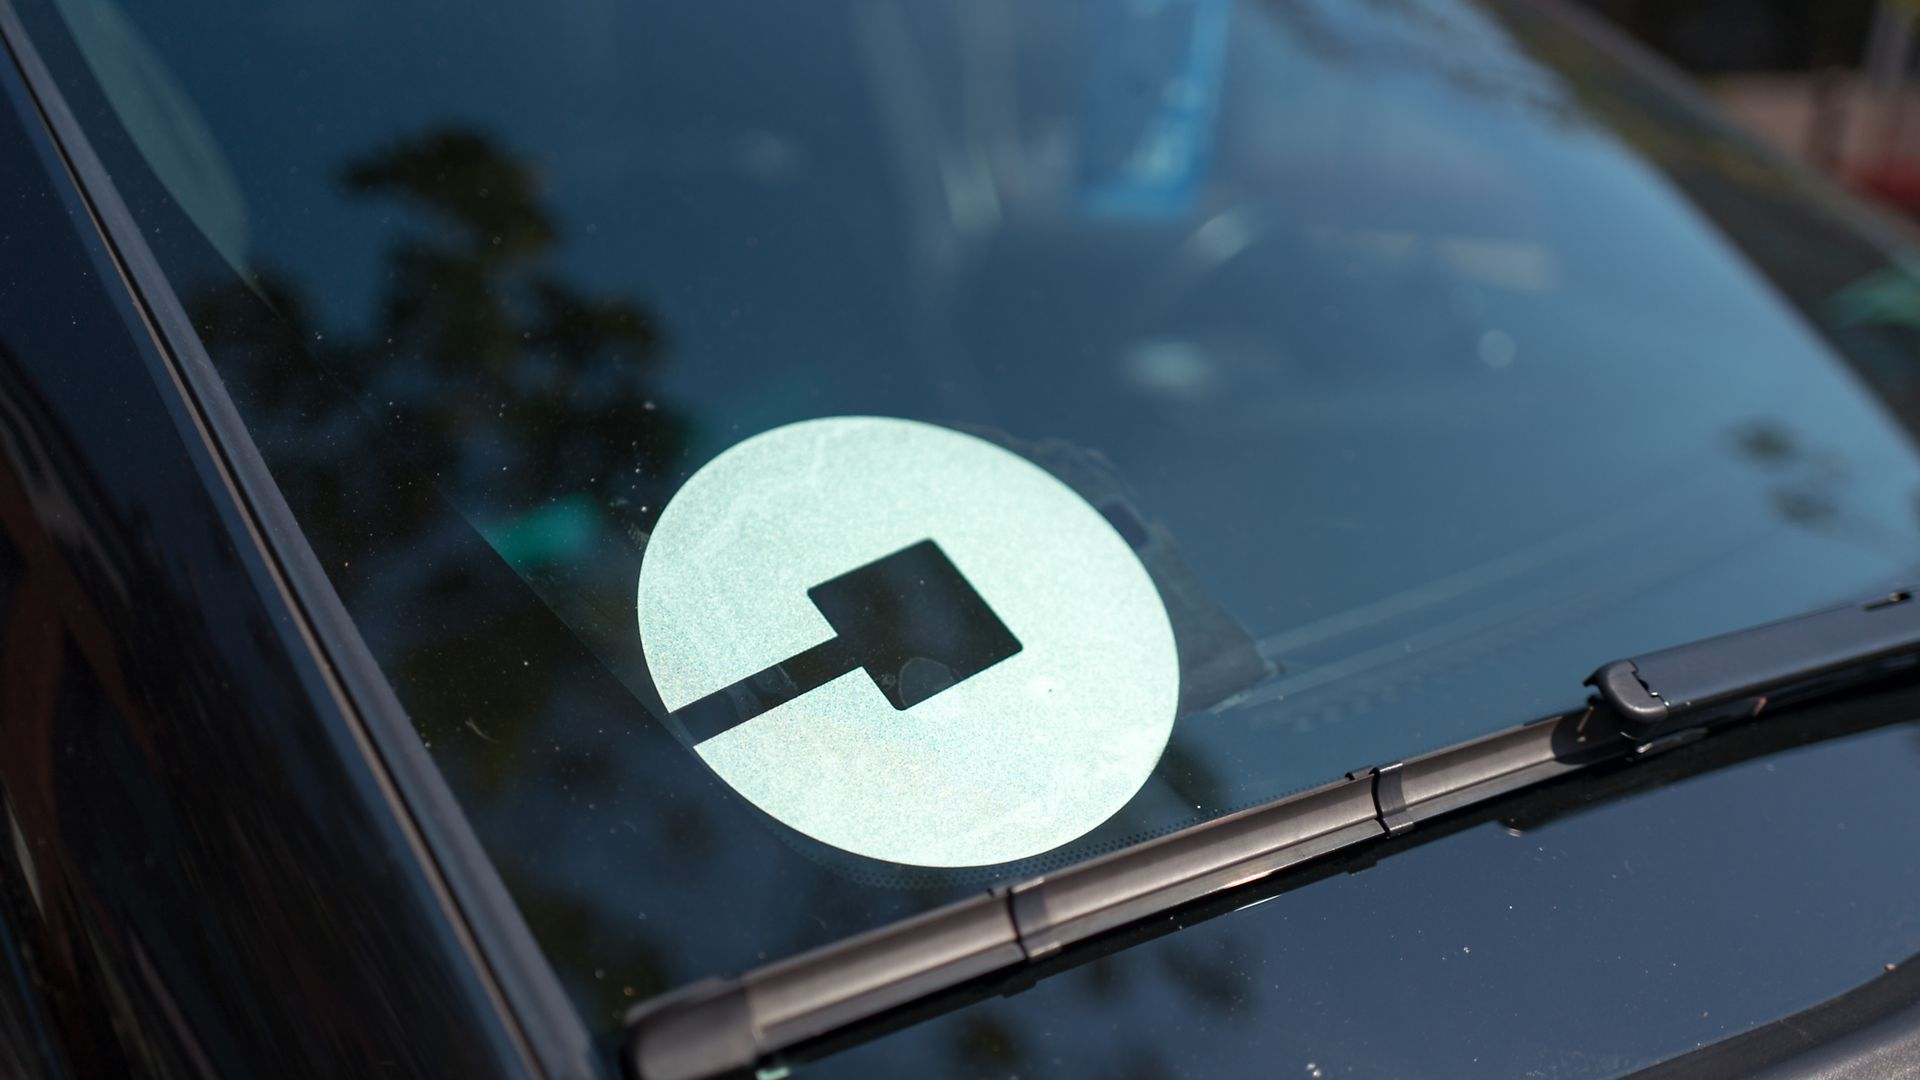 An Uber logo in a windshield